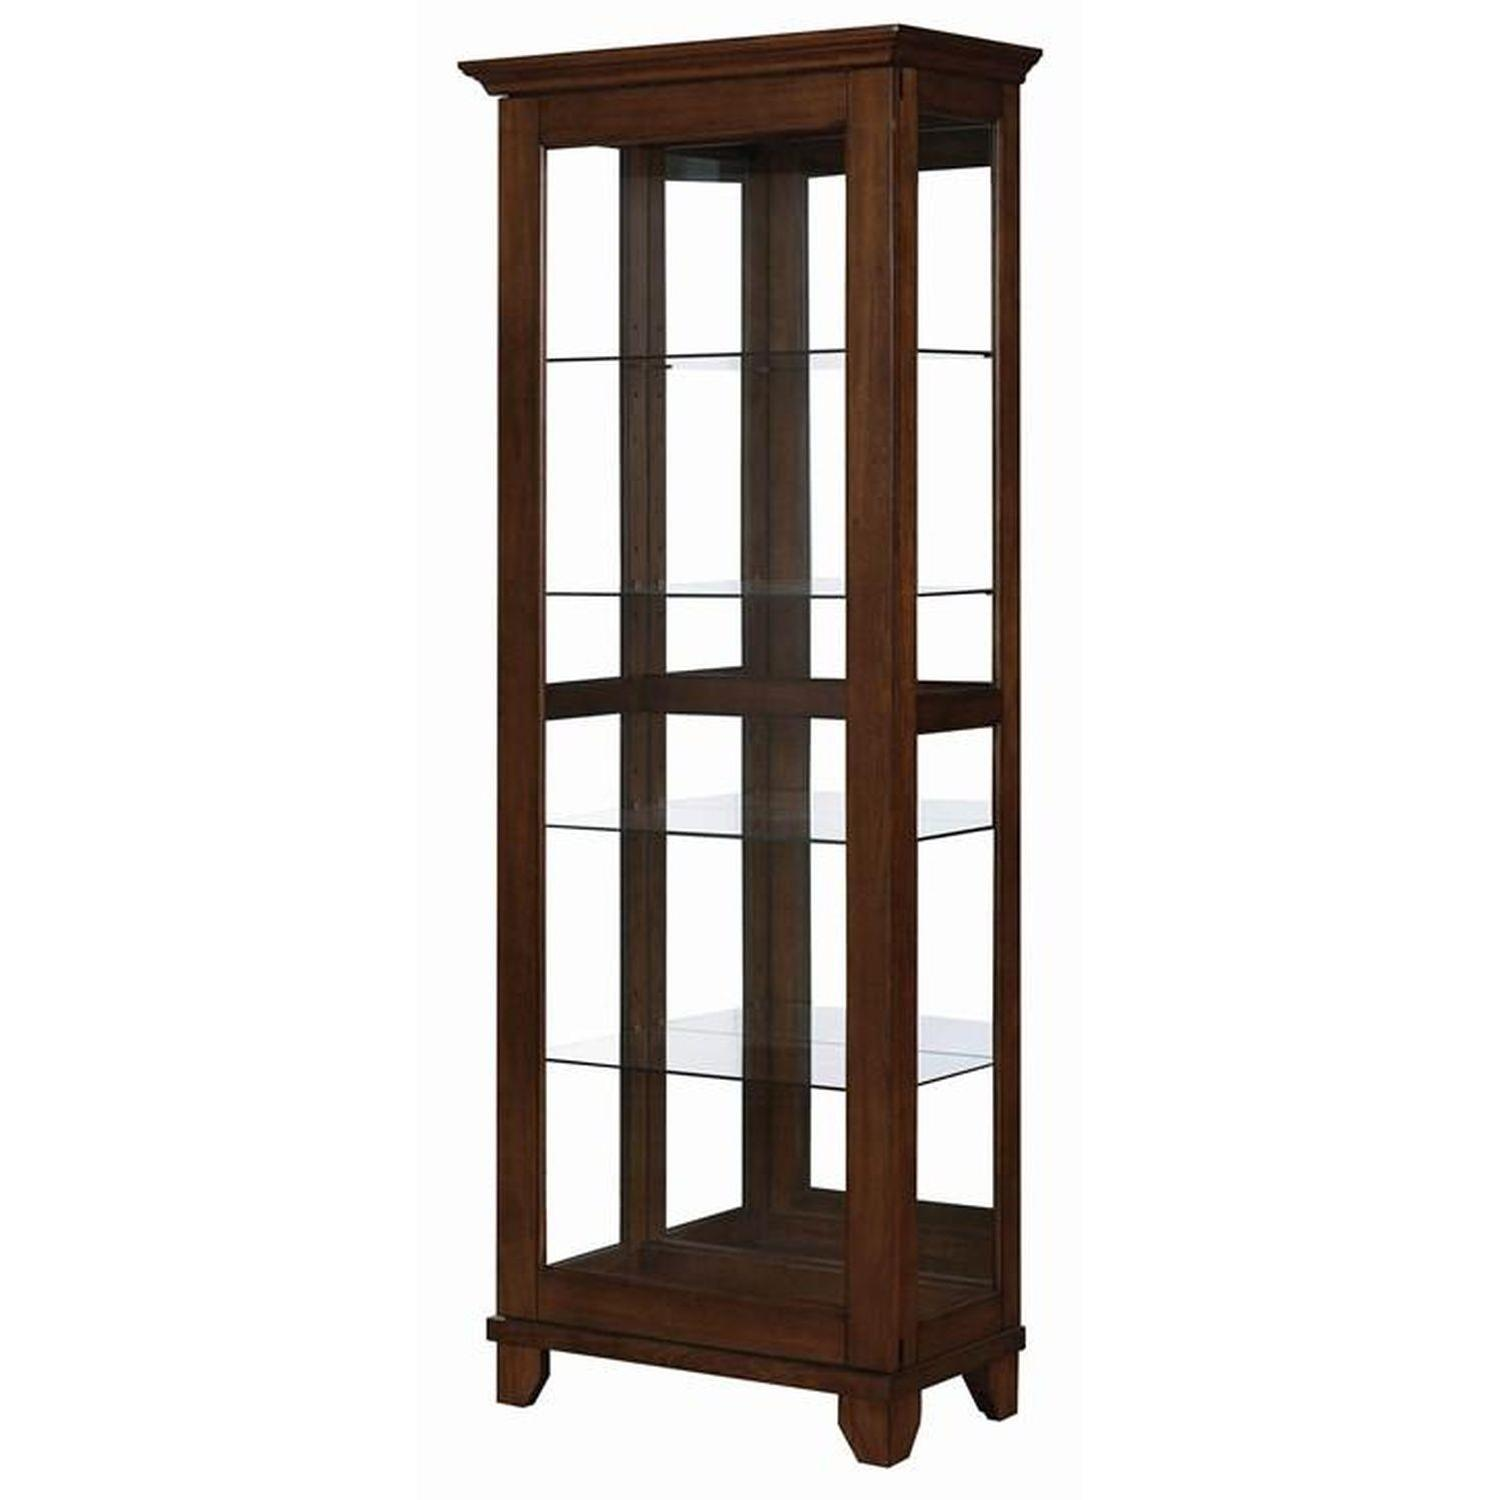 Curio Cabinet in Chestnut Finish w/ Glass Panels - image-6